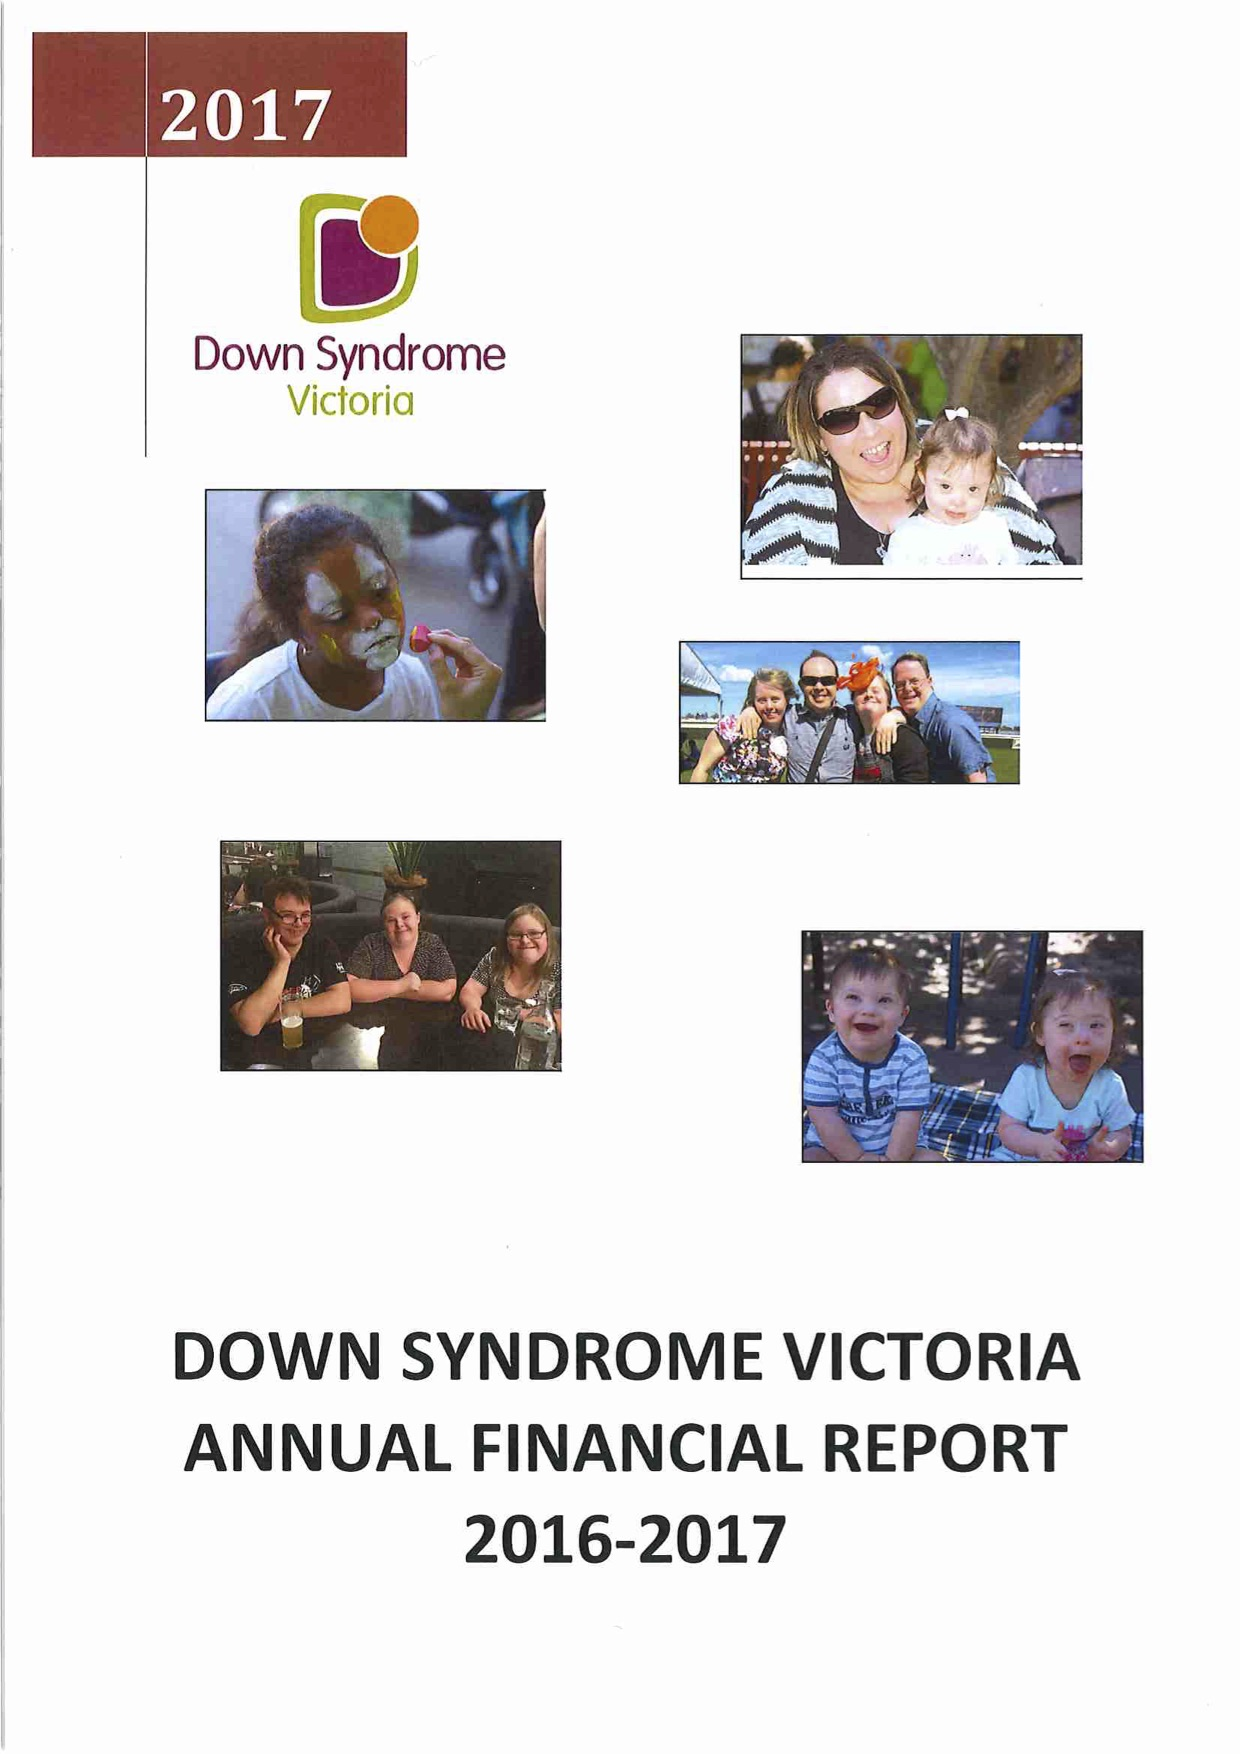 Down Syndrome Victoria Financial Report 2016 to 2017